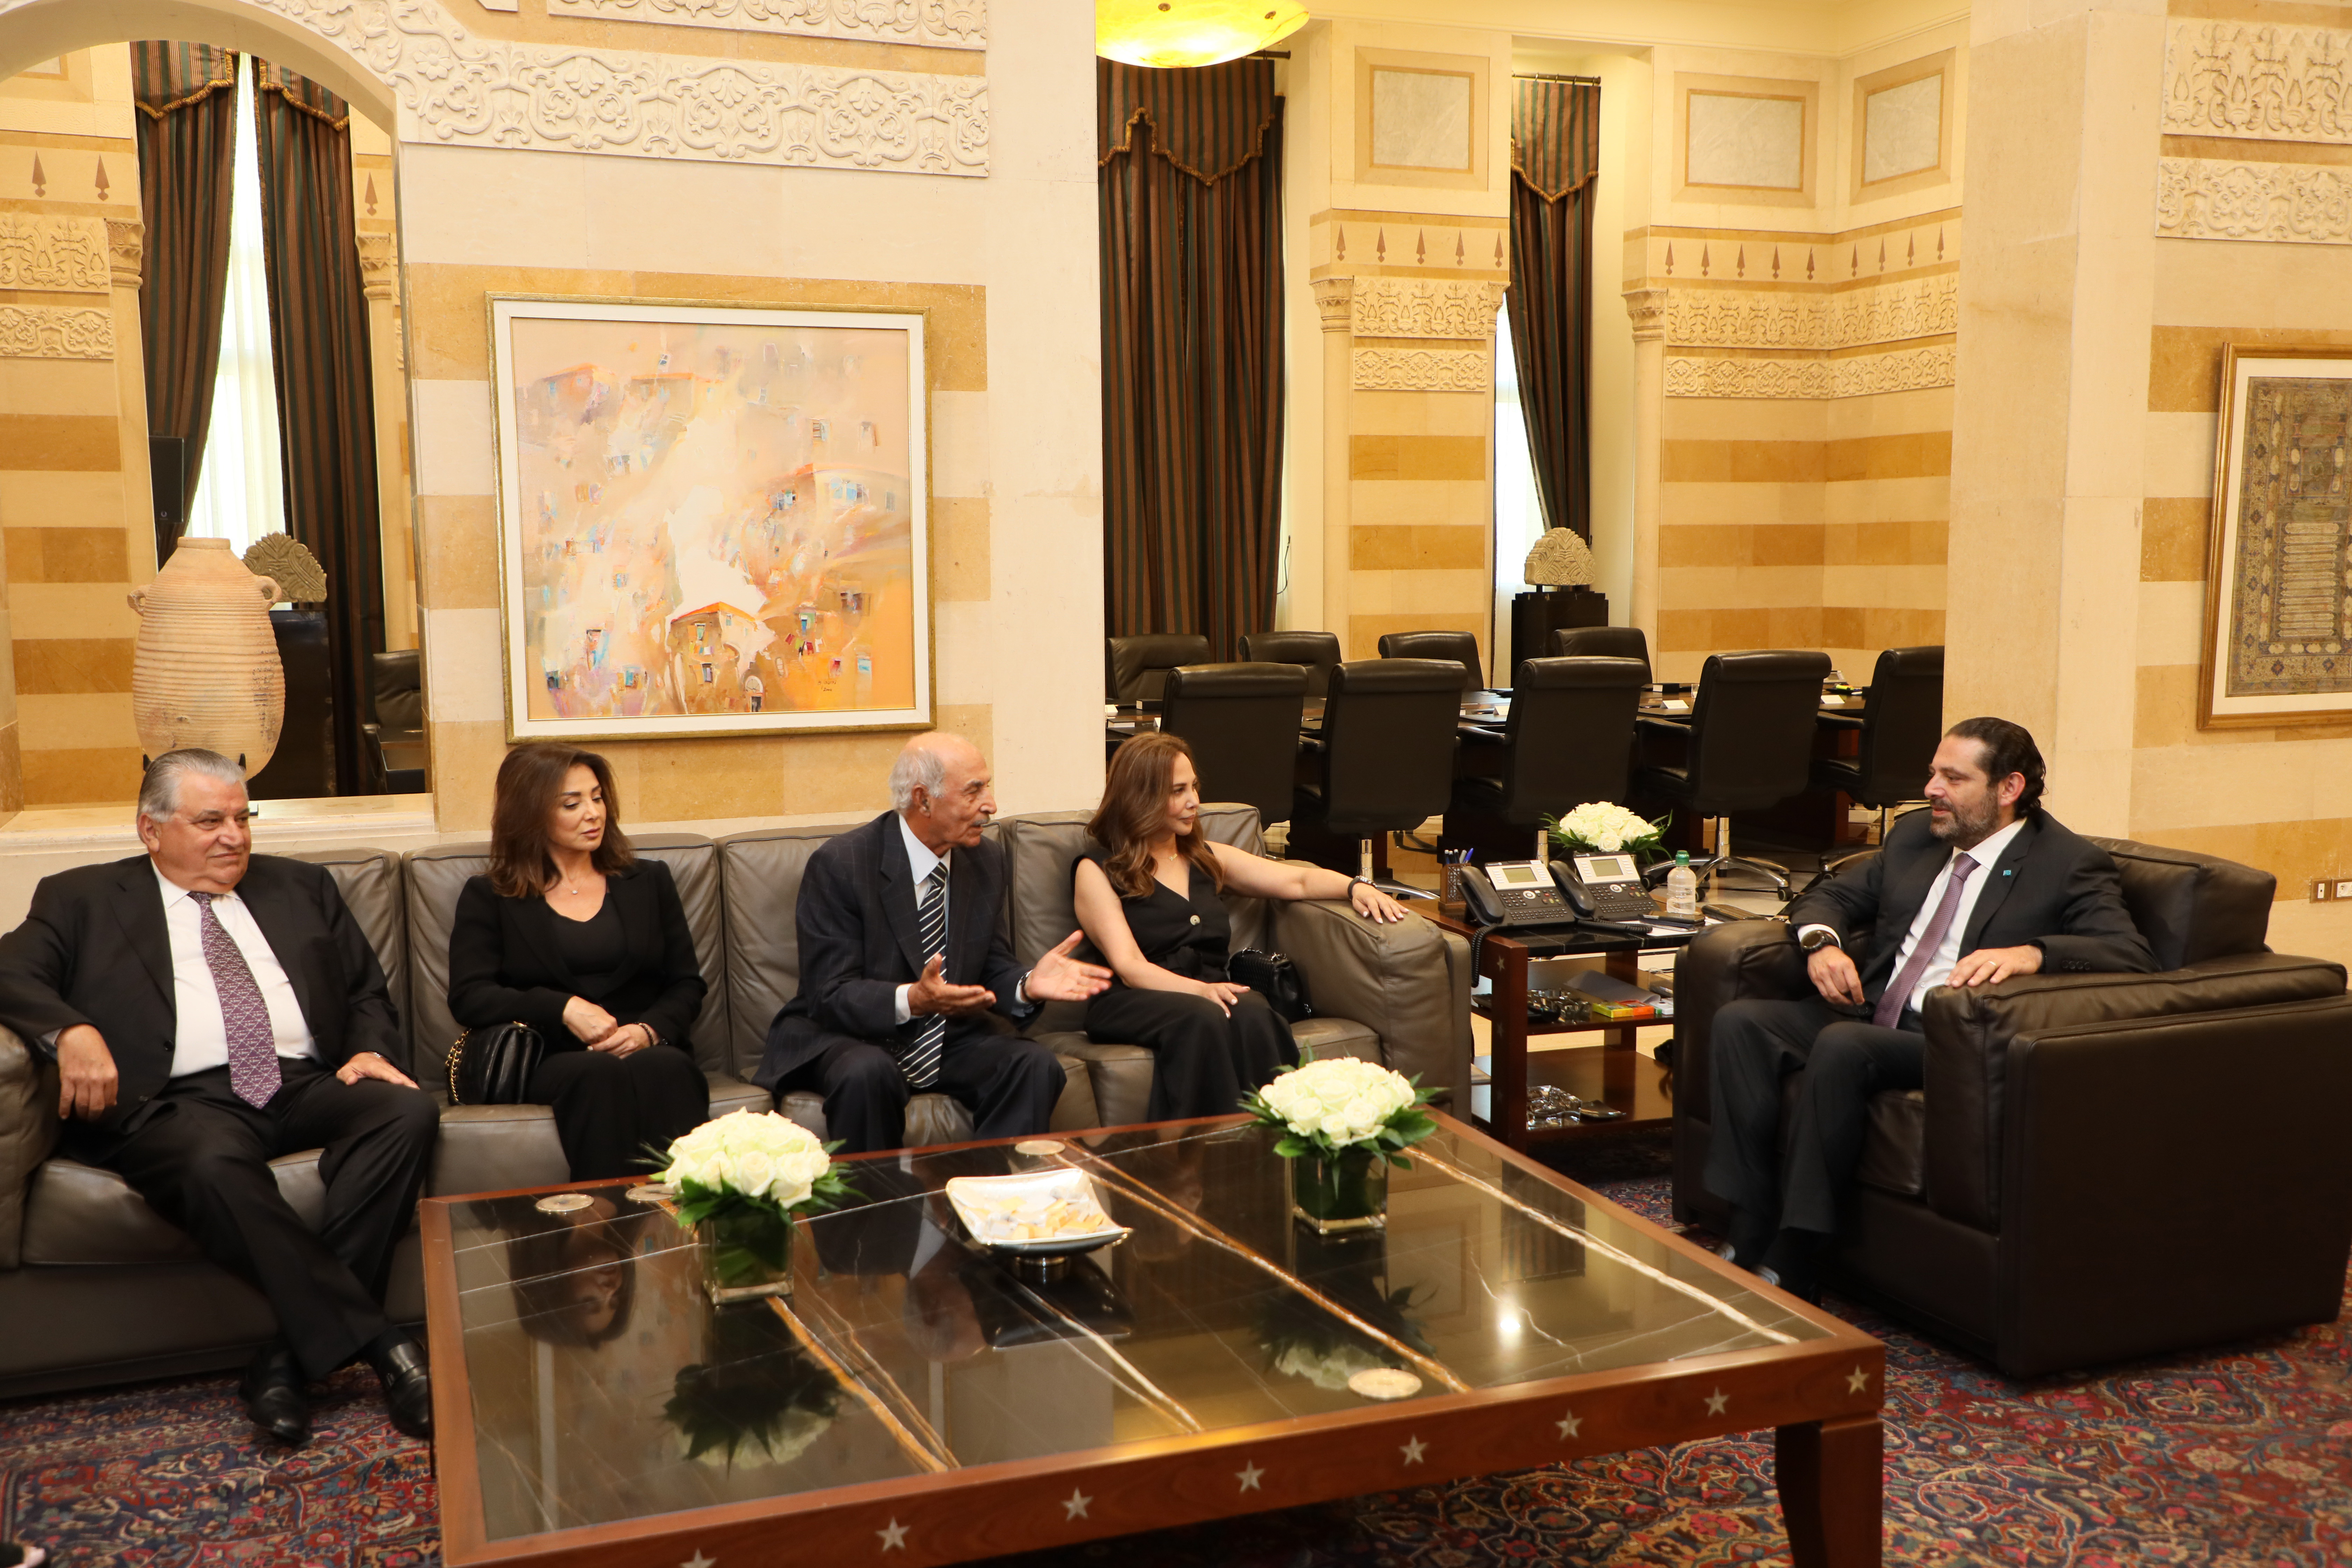 Pr Minister Saad Hariri meets a Delegation from Khatib Family